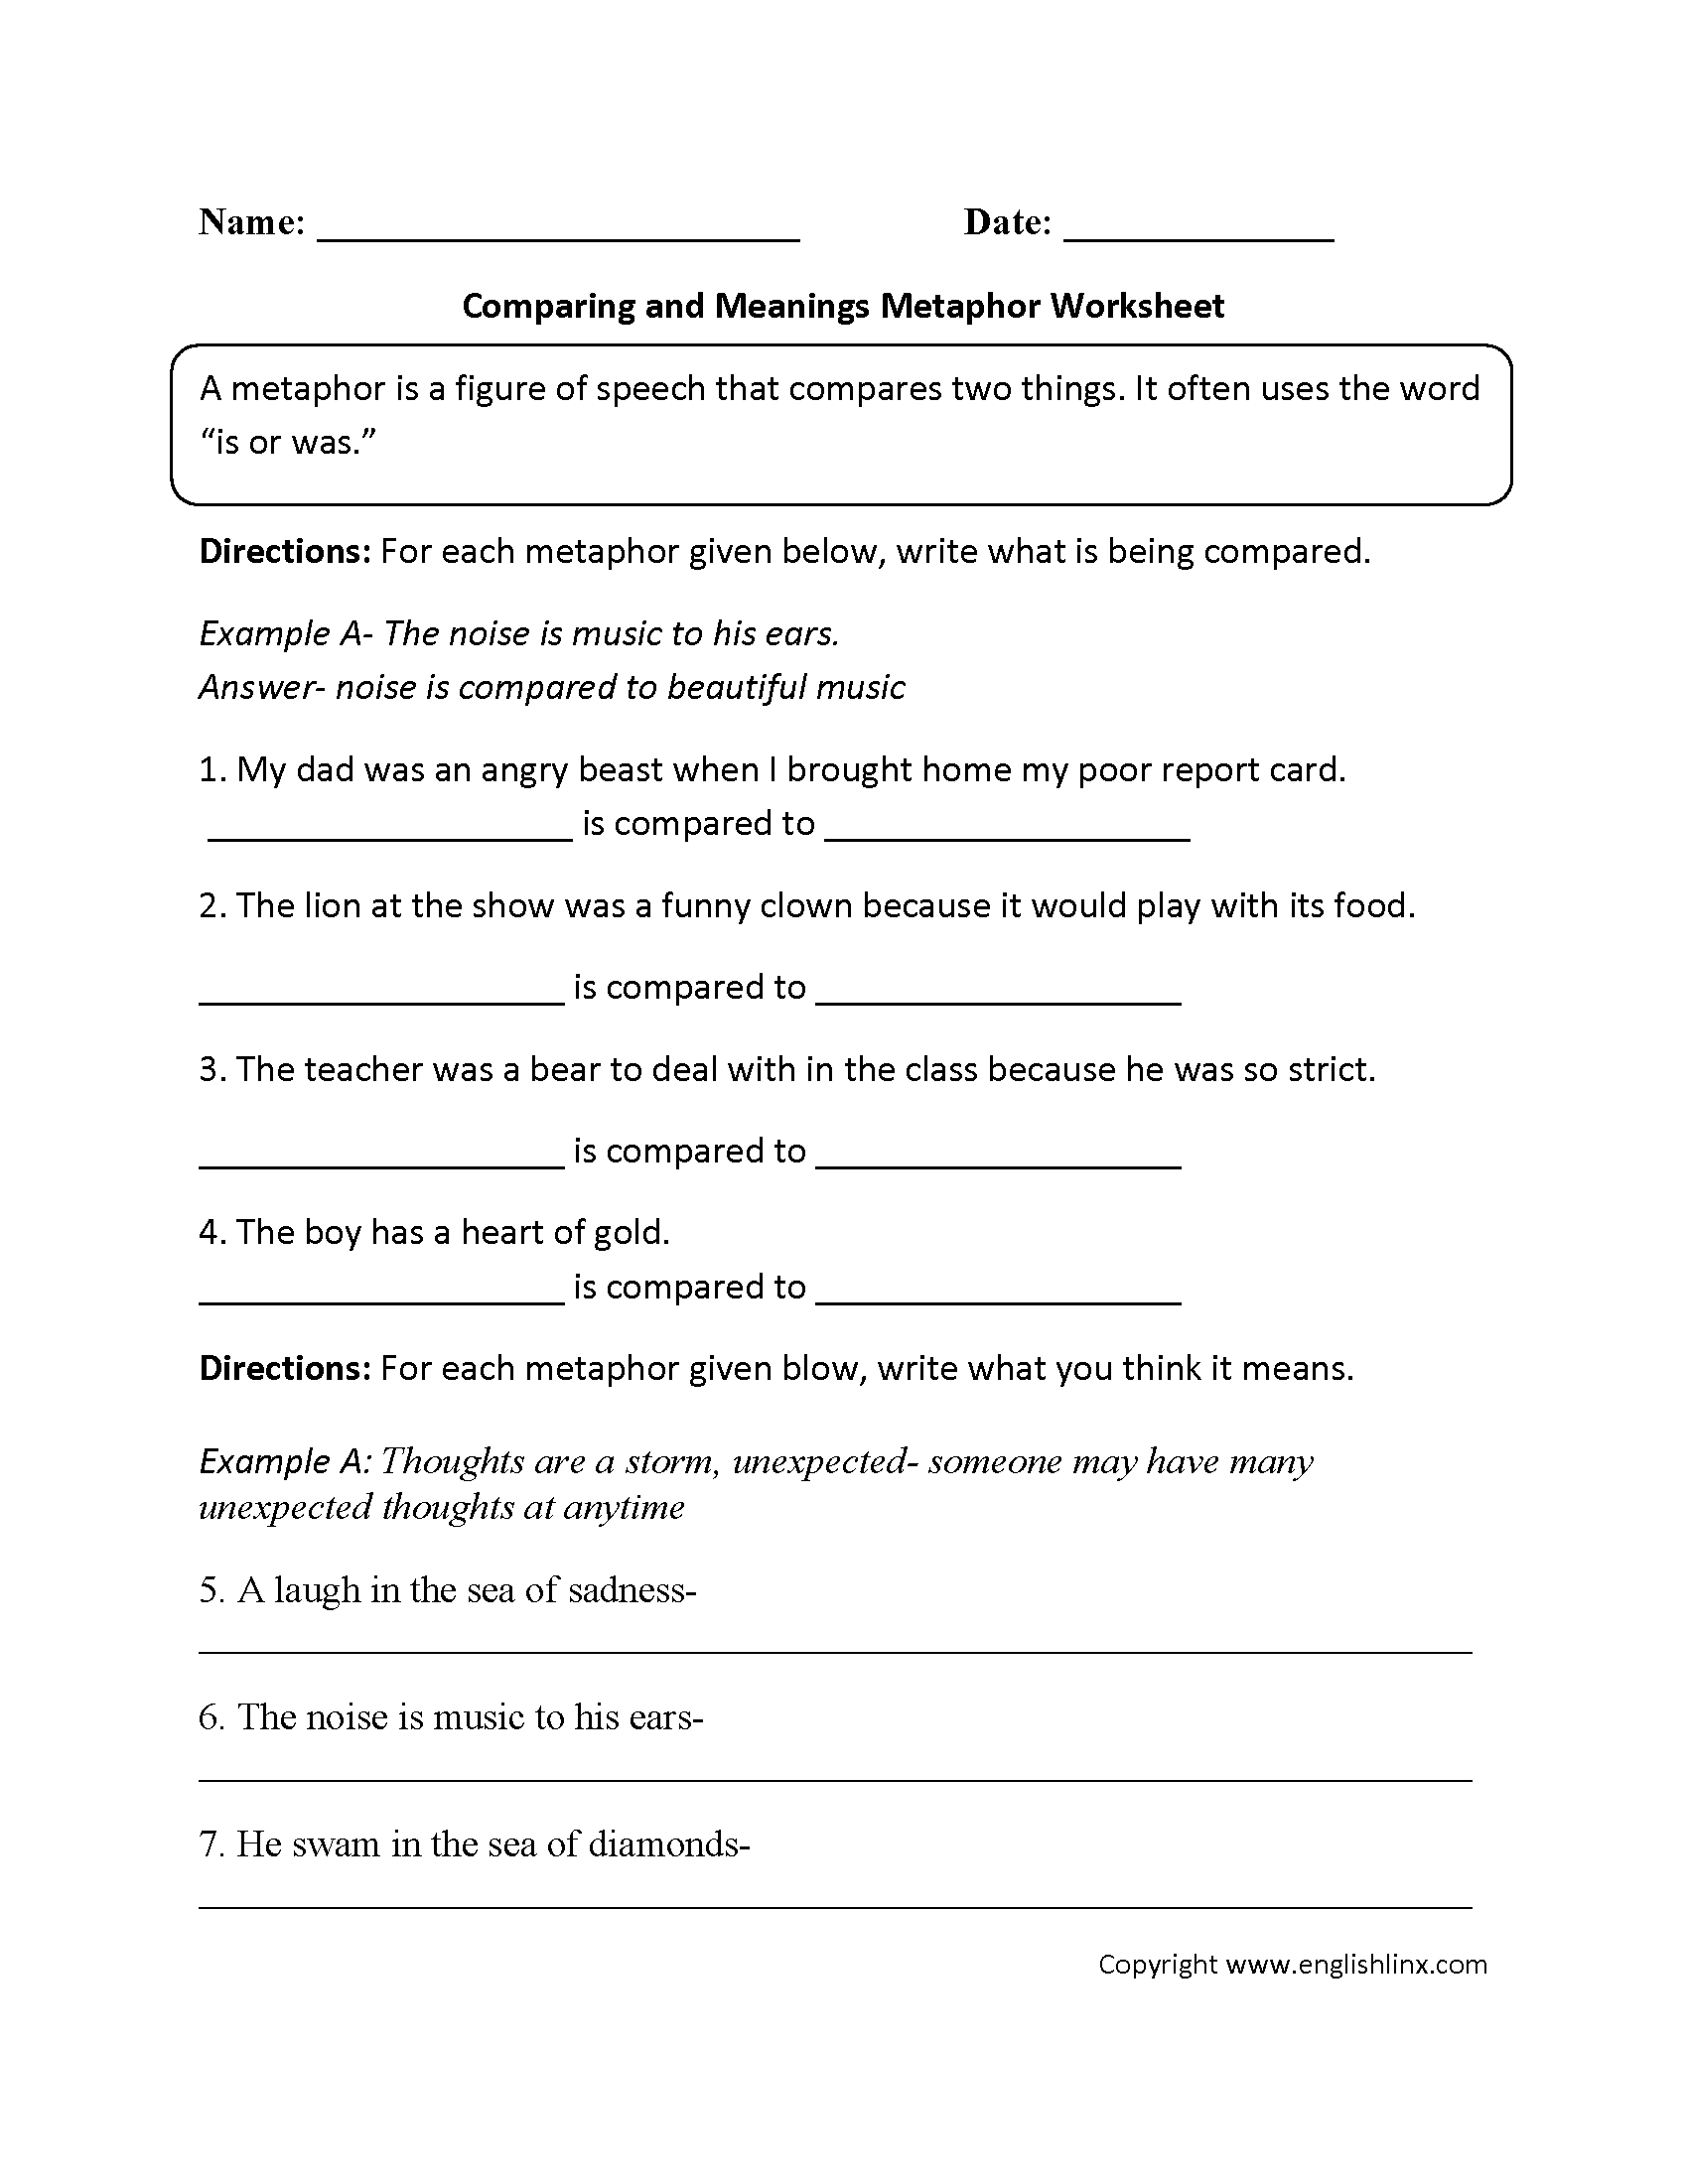 Comparing And Meanings Metaphor Worksheet